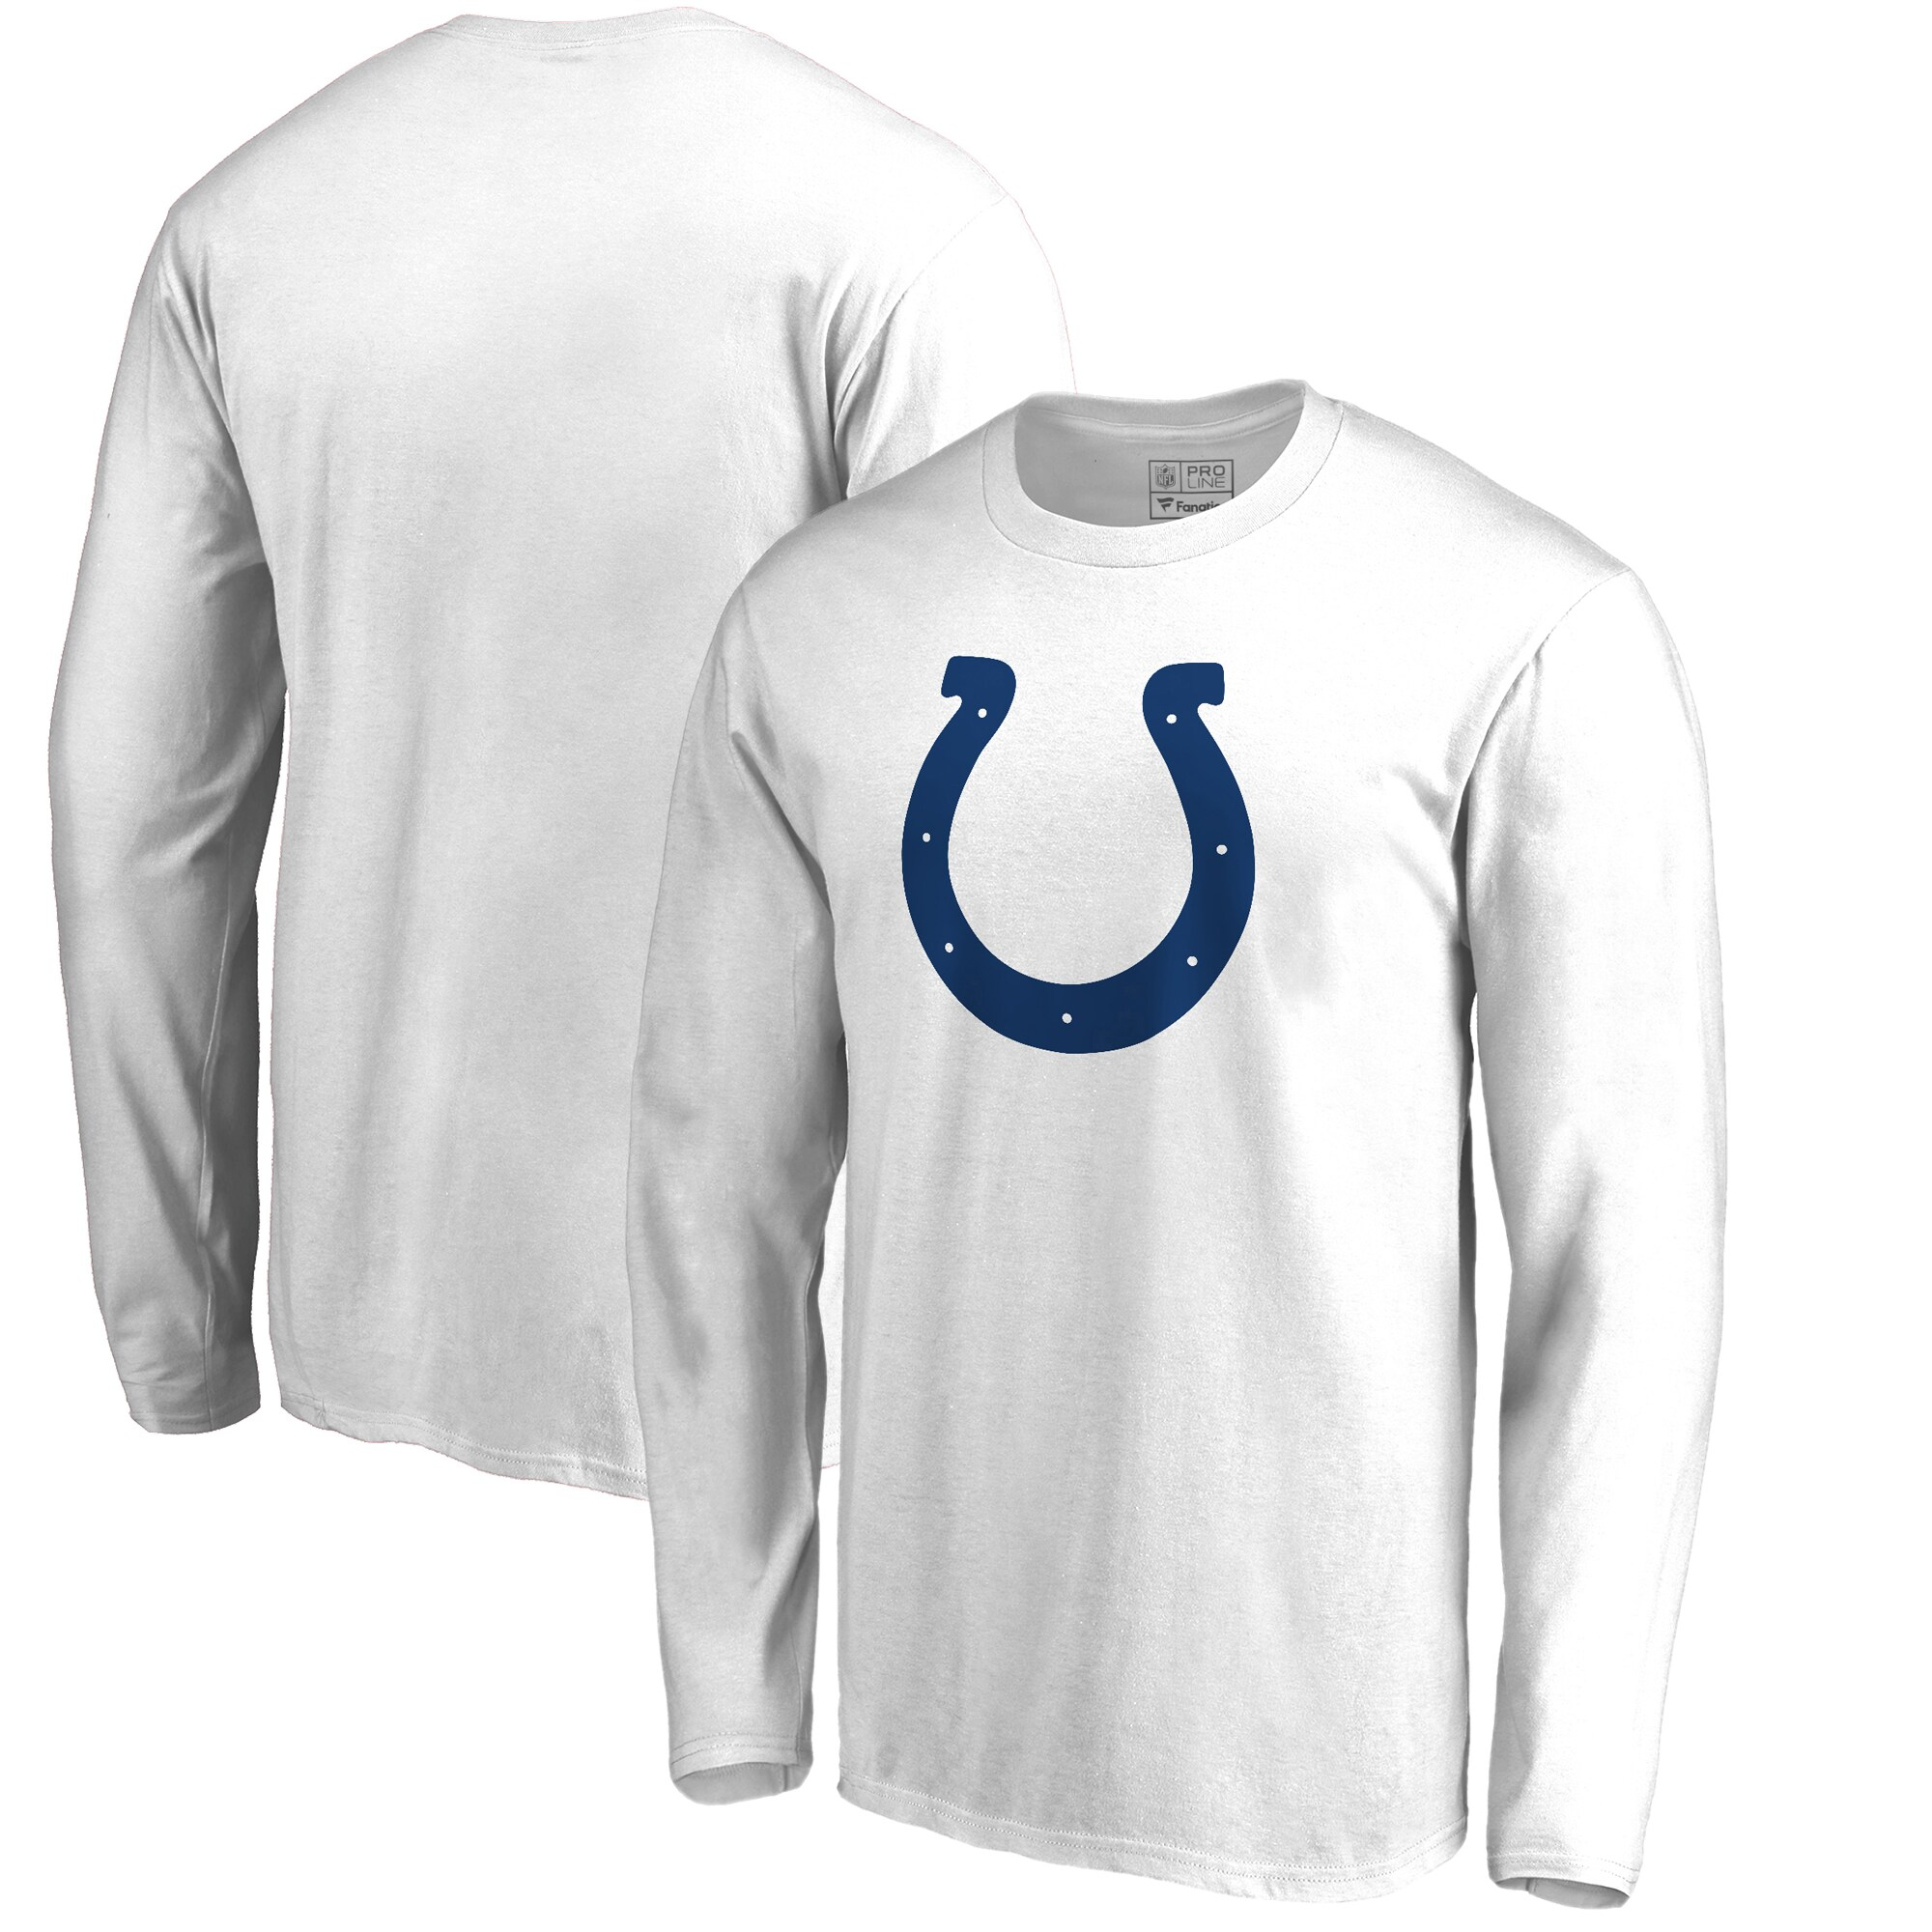 Indianapolis Colts NFL Pro Line by Fanatics Branded Primary Logo Big & Tall Long-Sleeve T-Shirt - White